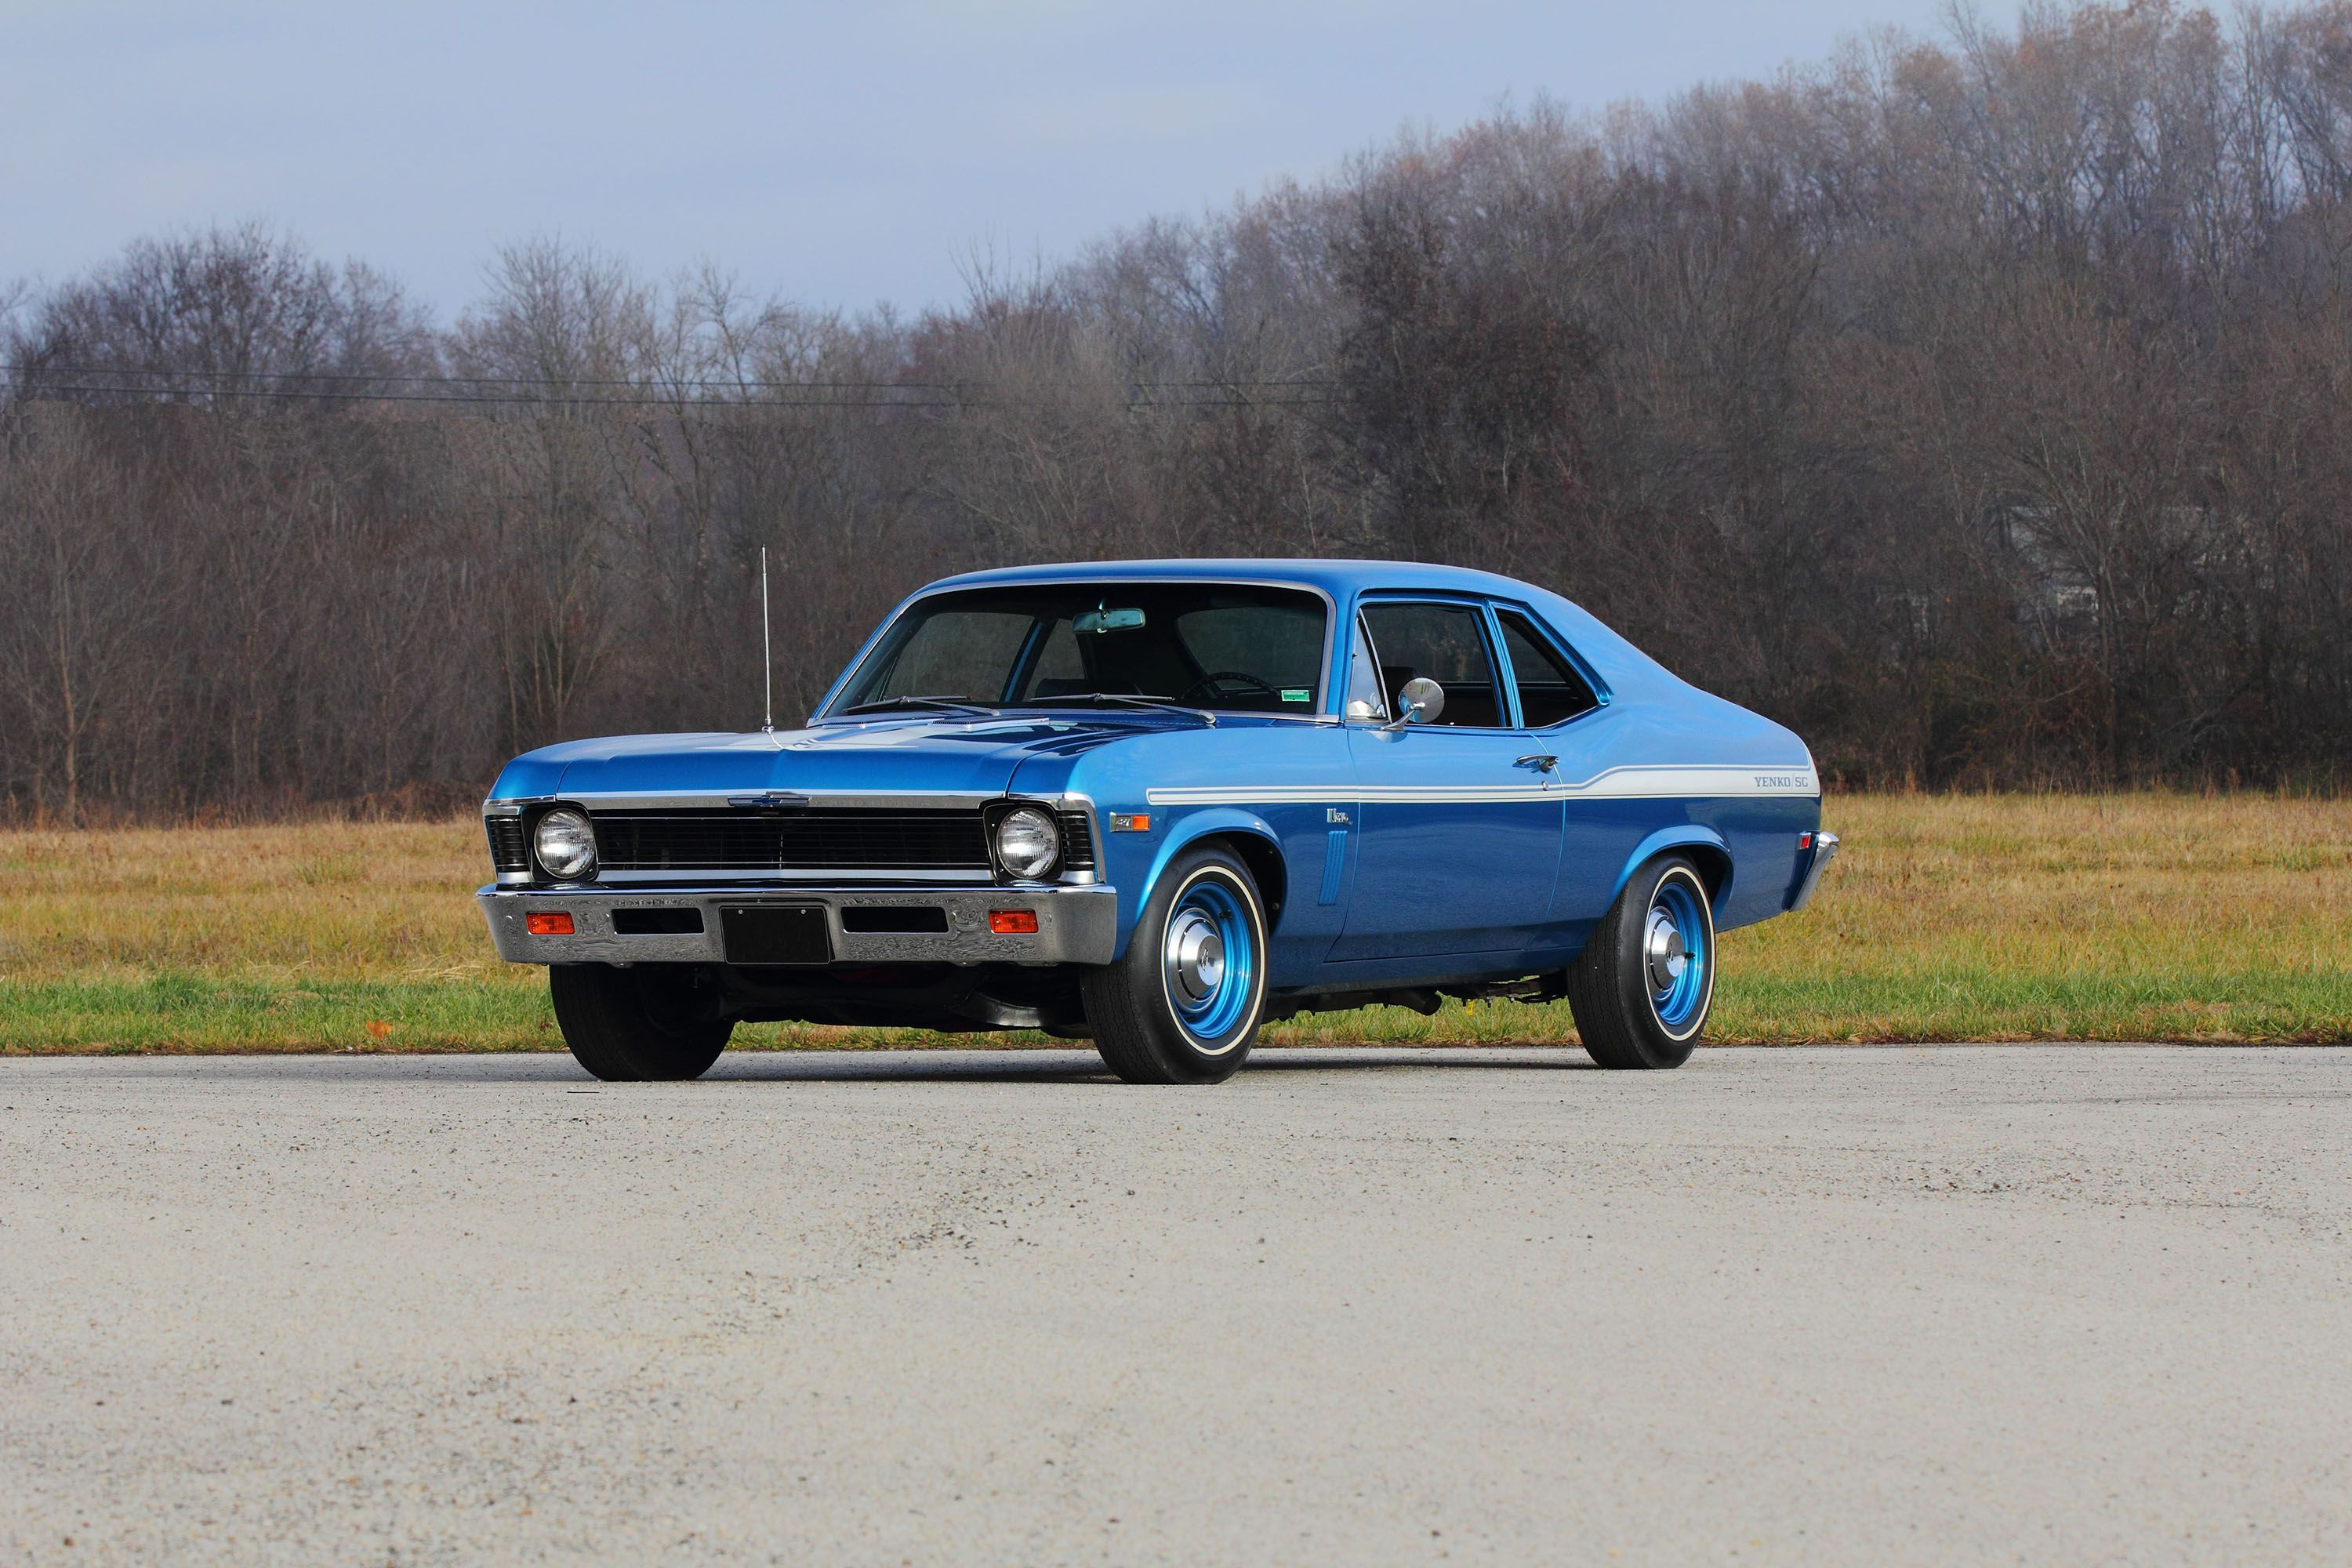 This ultrarare Yenko SC427 Nova is up for auction